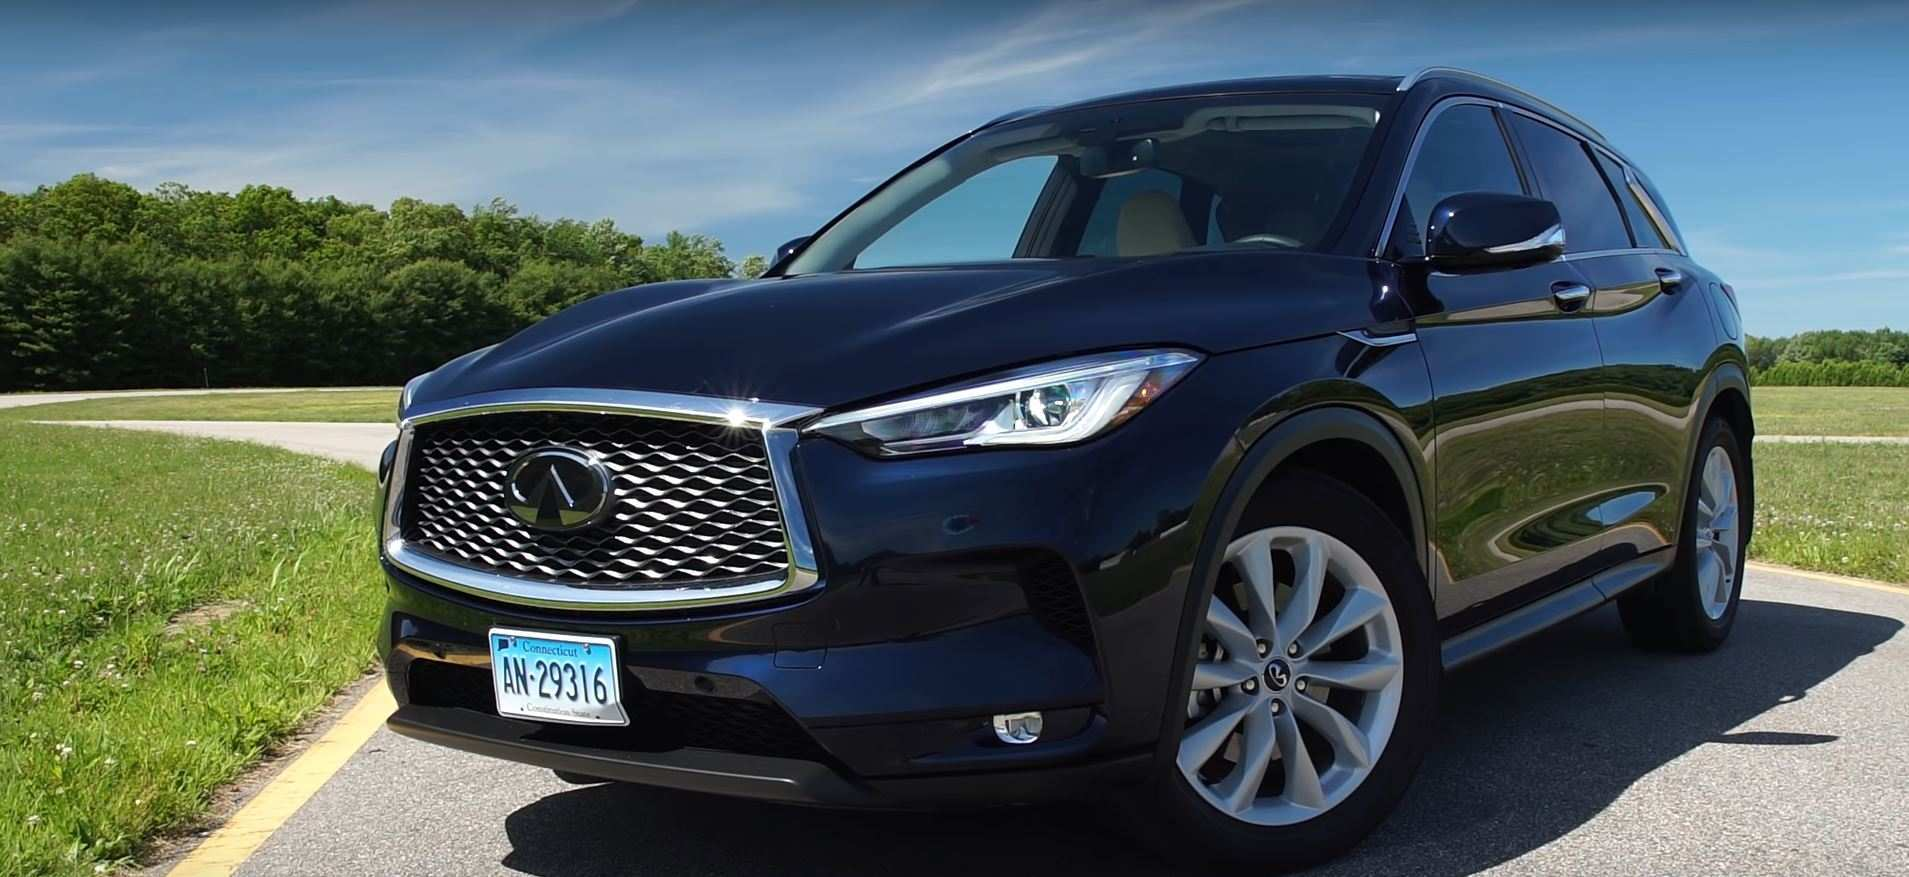 35 Gallery of 2019 Infiniti Qx50 Apple Carplay Images by 2019 Infiniti Qx50 Apple Carplay